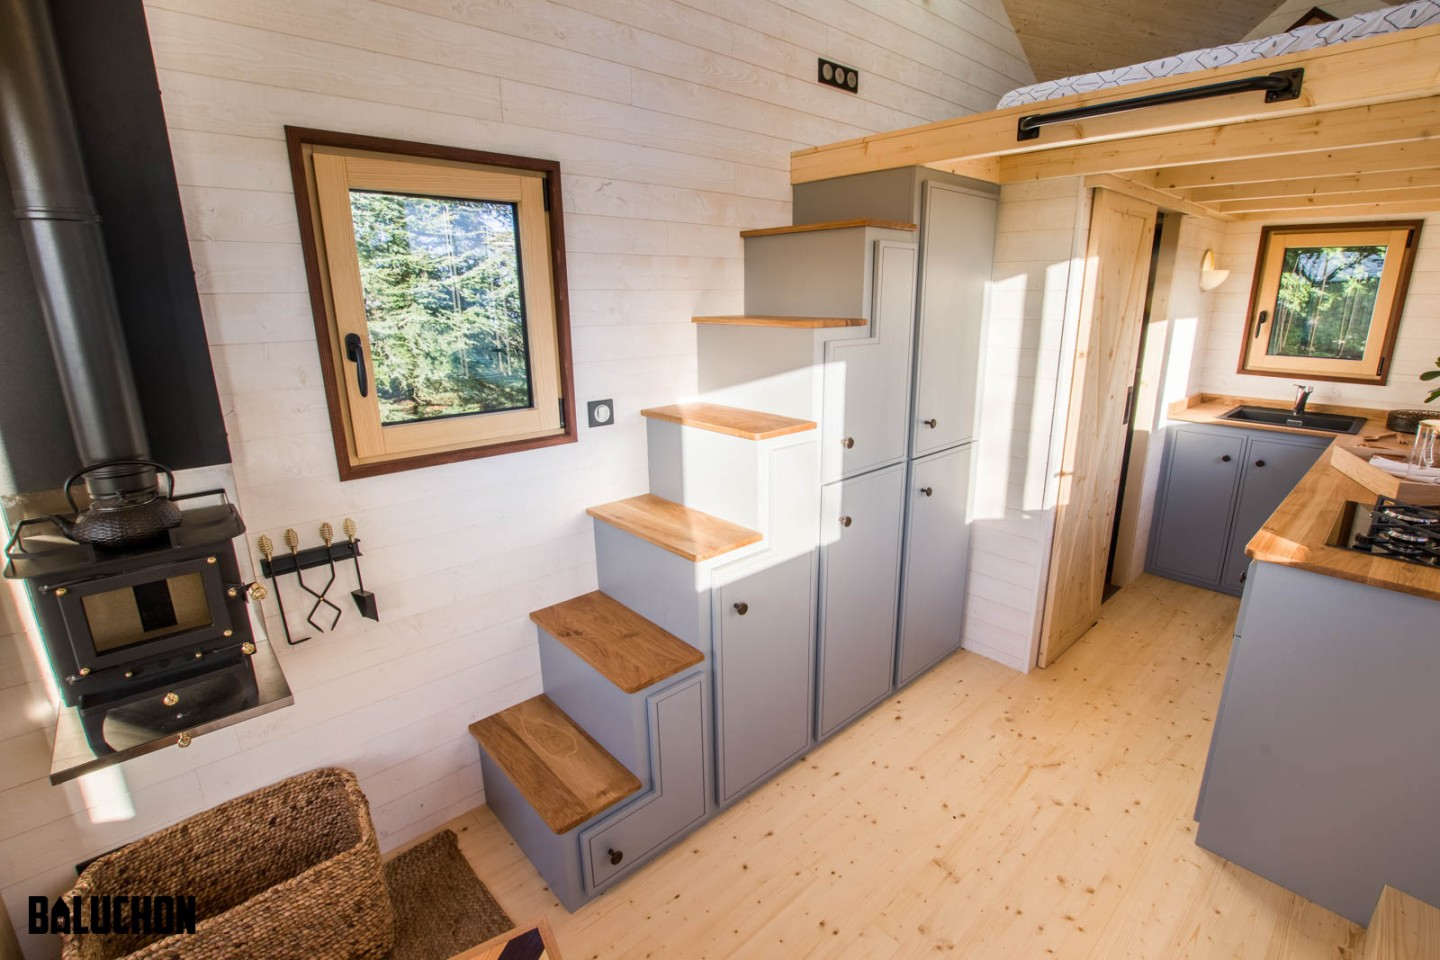 1611522720 396 This 6 meter portable house has all the features of a This 6-meter portable house has all the features of a permanent residence 16